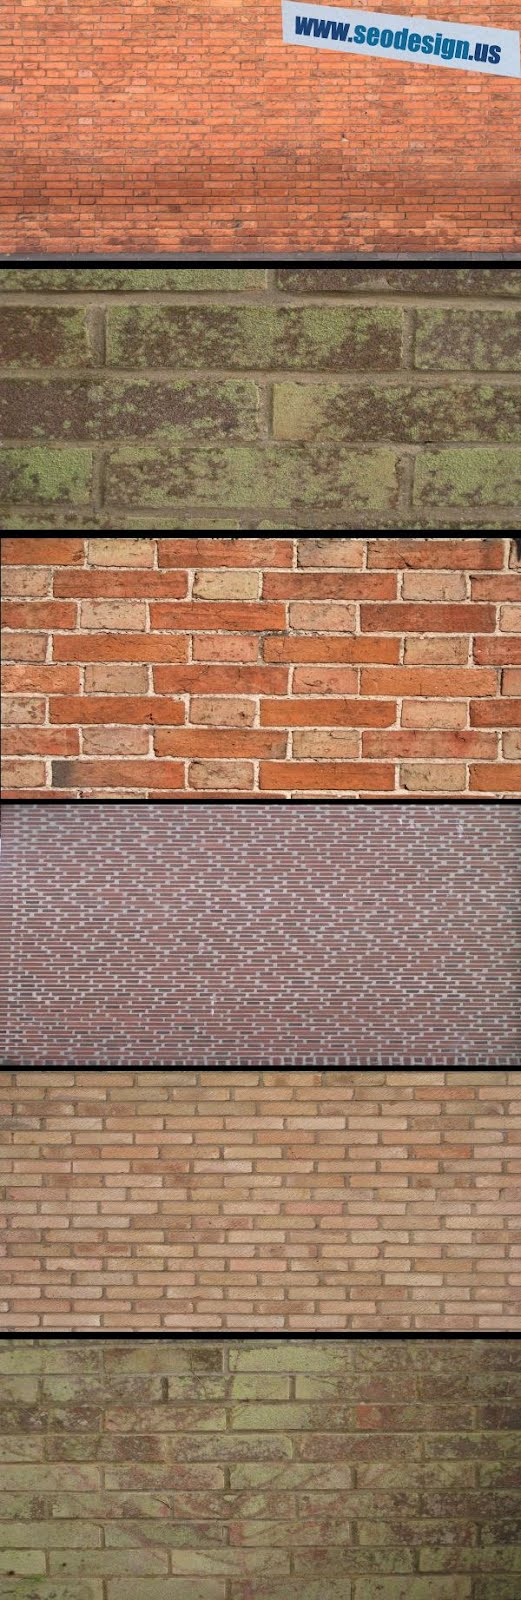 32 Free Brick Wall Background Textures Pack